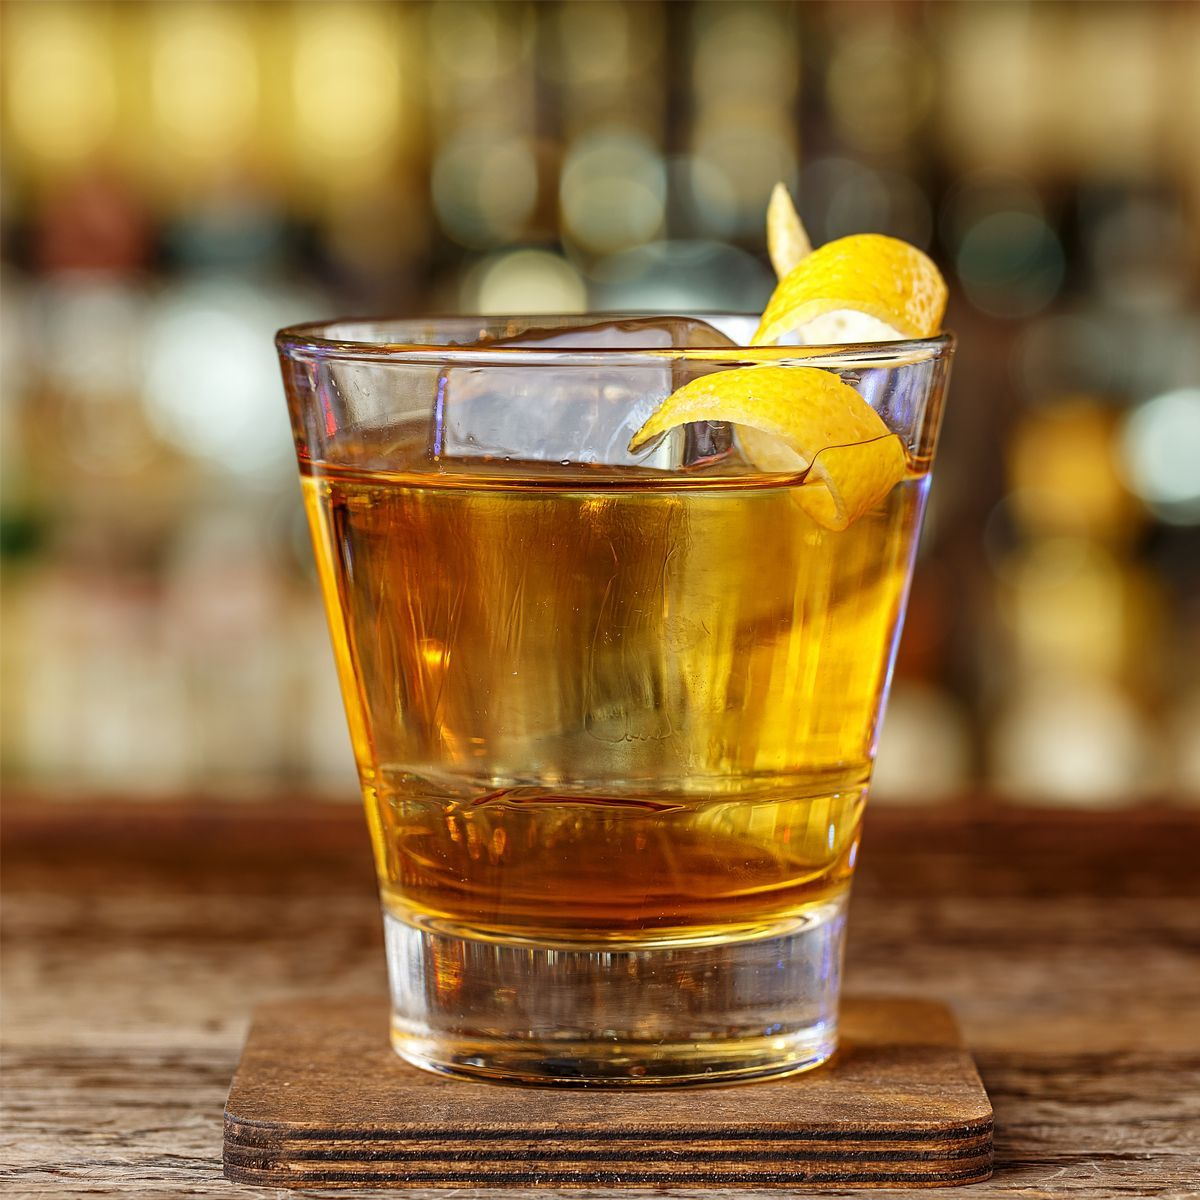 A variation on the classic Manhattan with Bénédictine in place of vermouth and especially delicious when served on the rocks, rather than up, as Manhattans usually are.